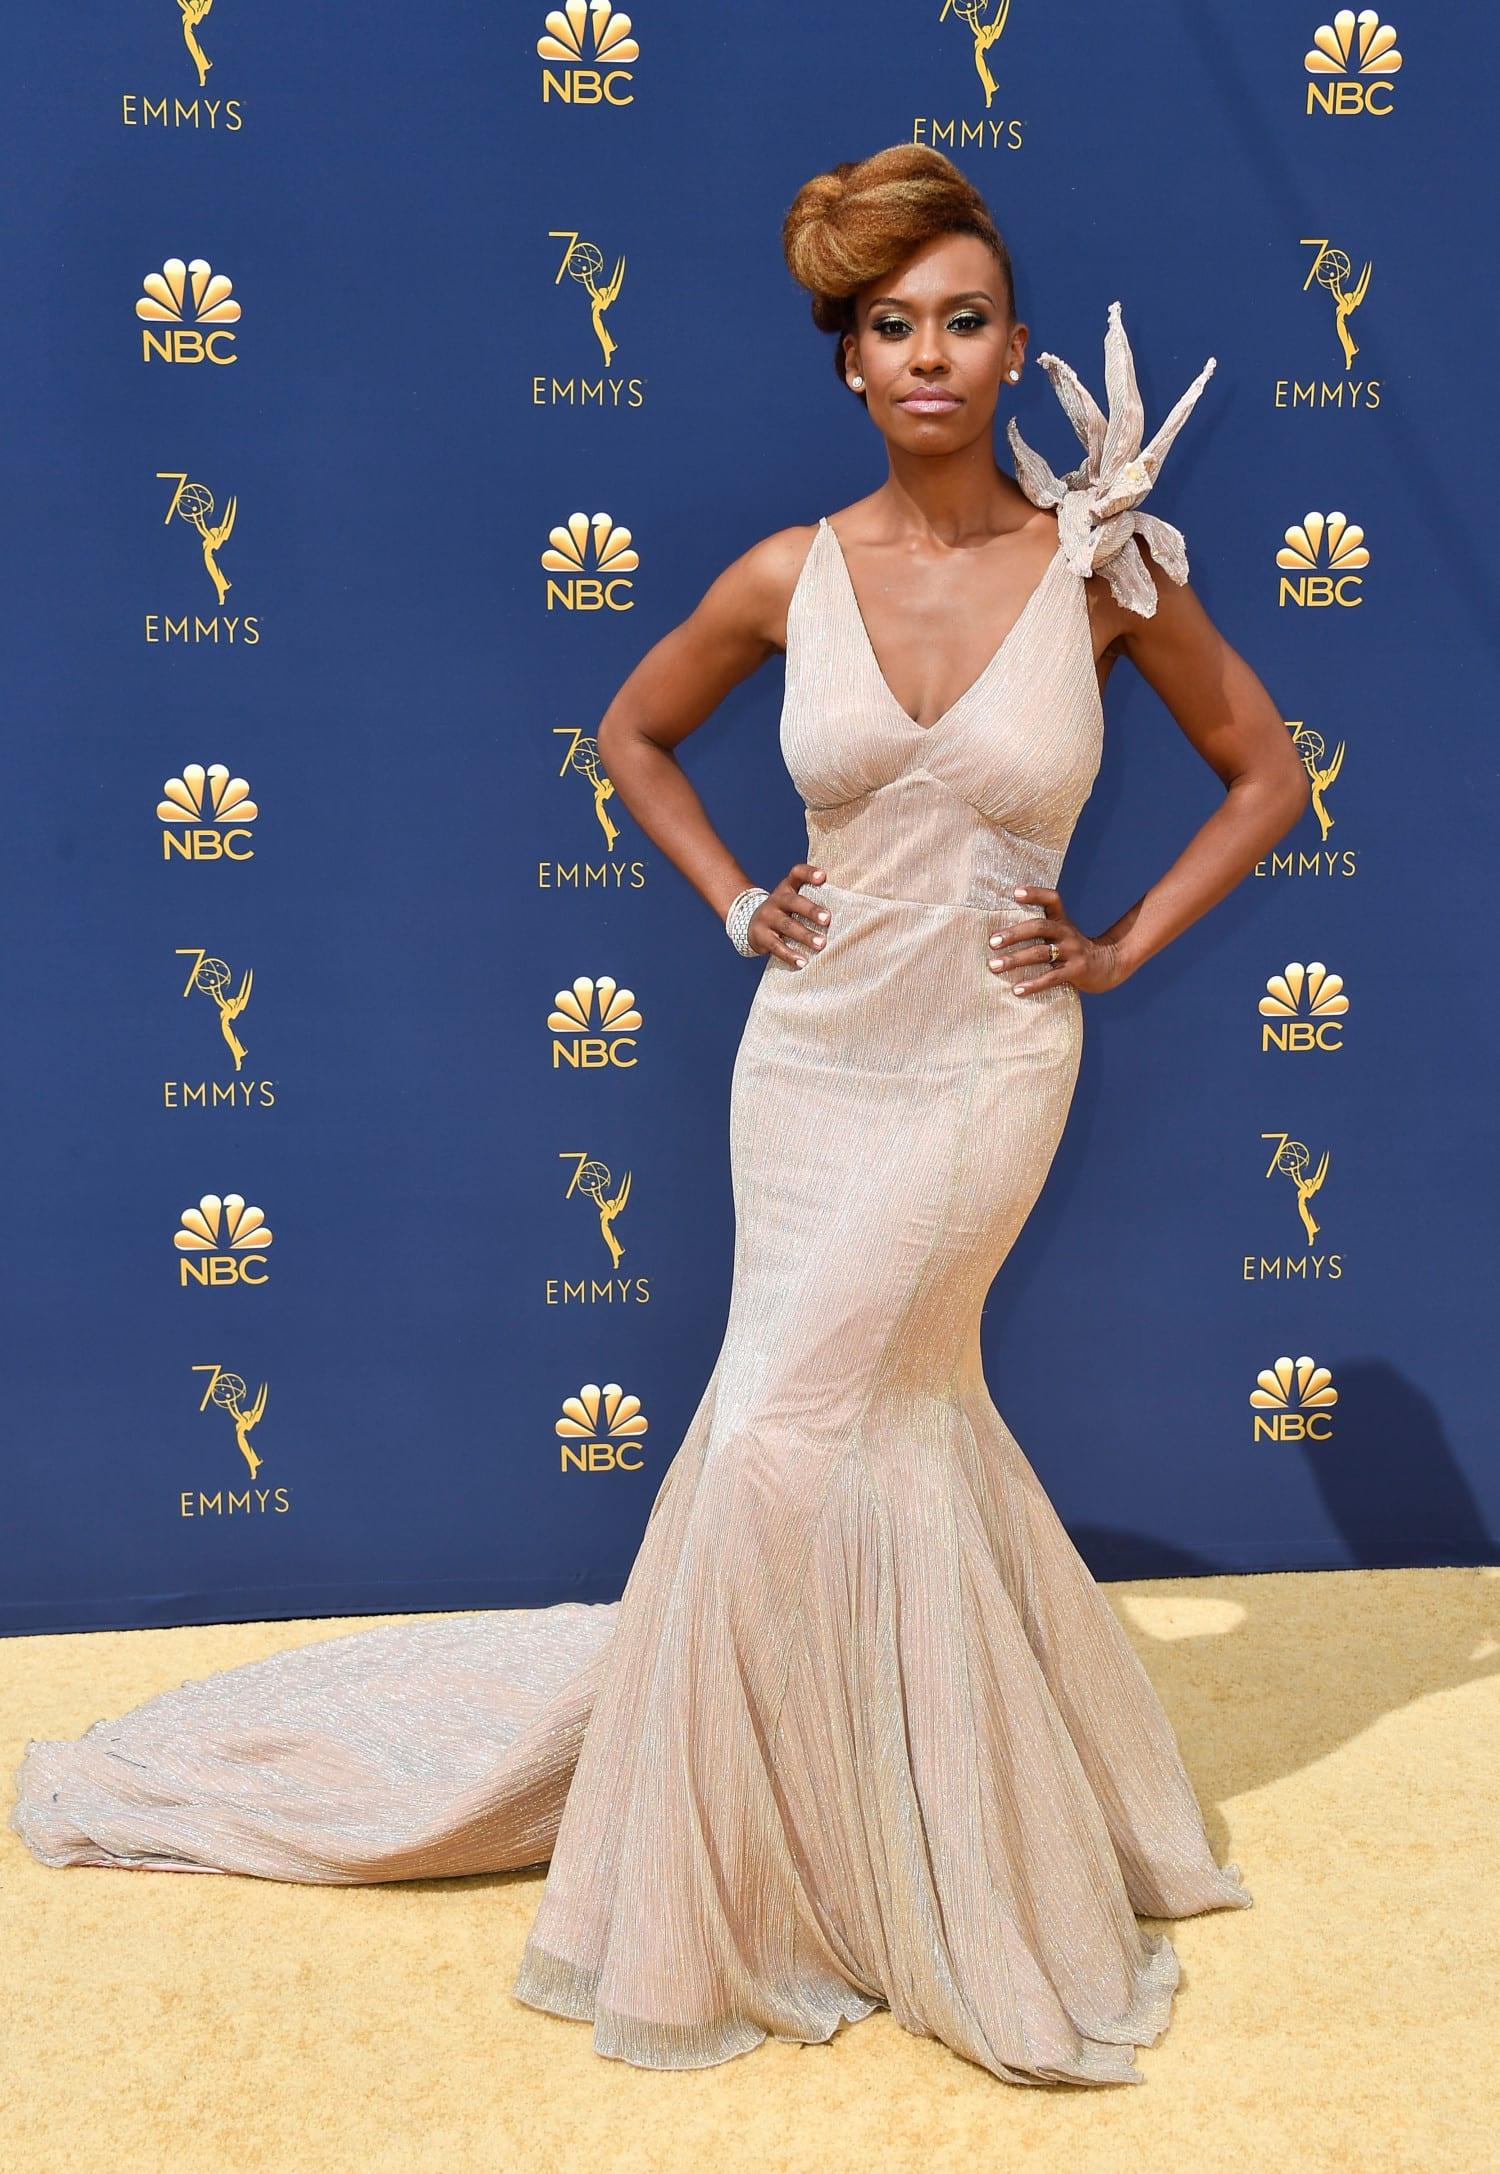 Ryan Michelle Bathe 2018 emmys photo